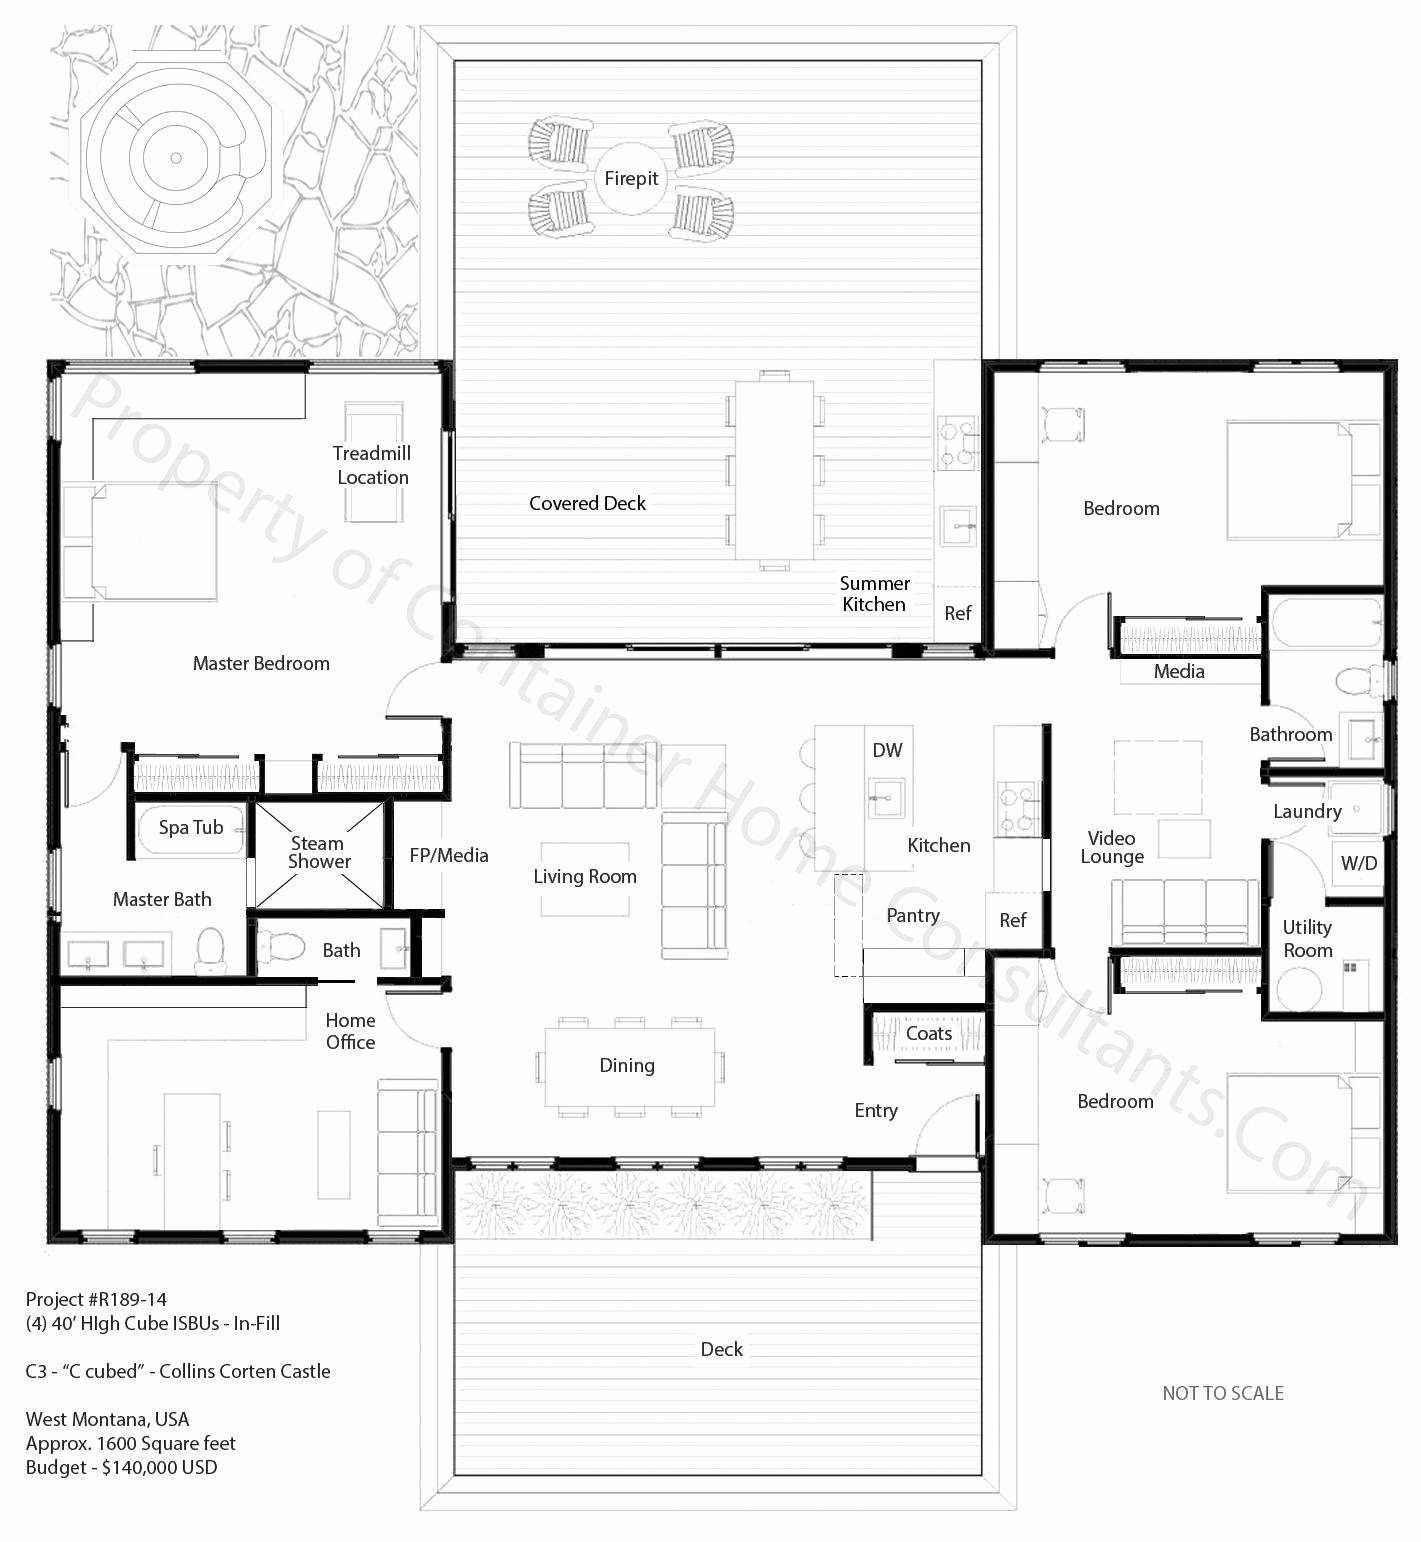 4 Bedroom House Plans Qld New H Shaped Container Home Plan House Planes Pi Container House Plans Shipping Container House Plans Shipping Container Home Designs